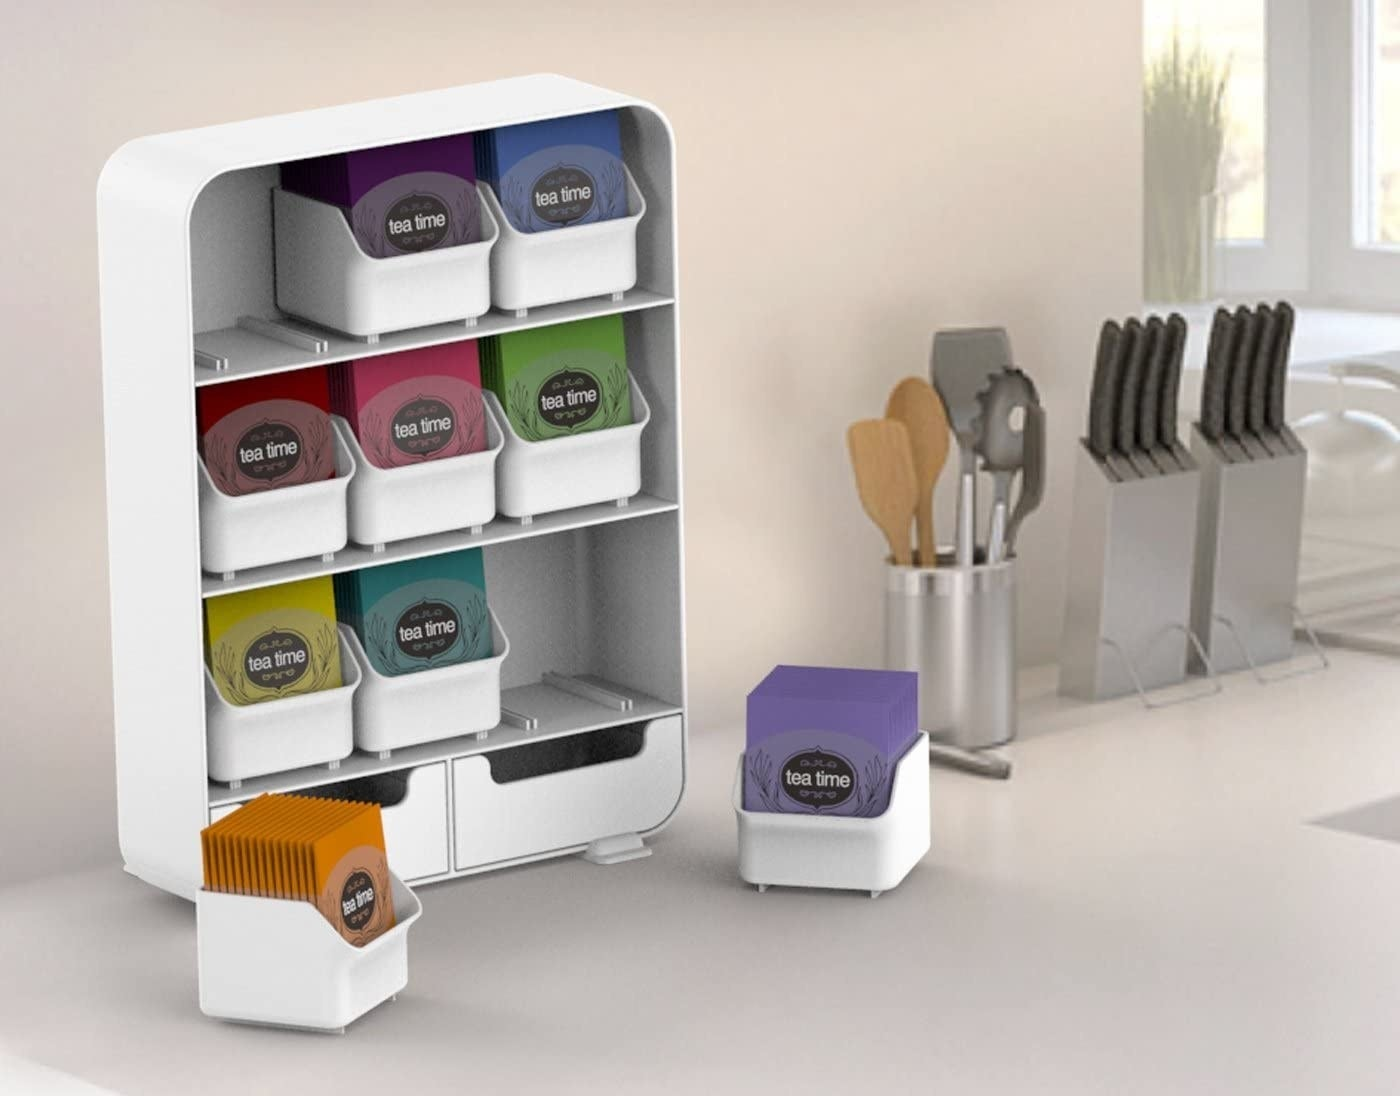 The tea bag shelf with 11 compartments on a counter